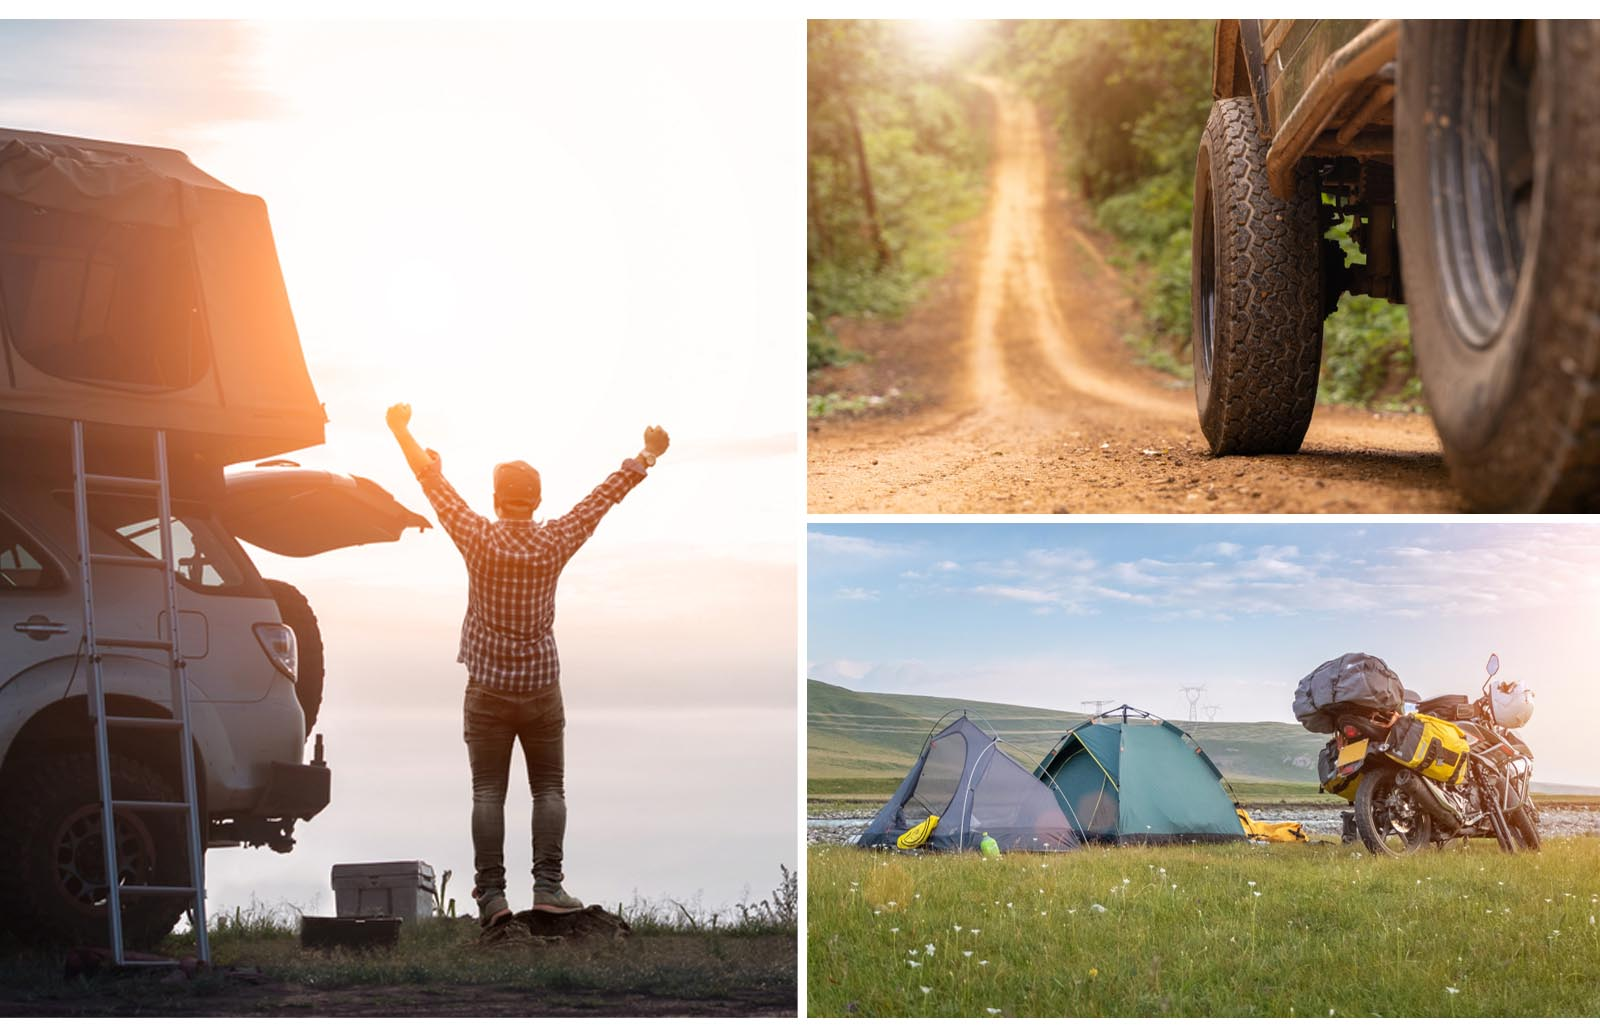 off-roading camping experiences